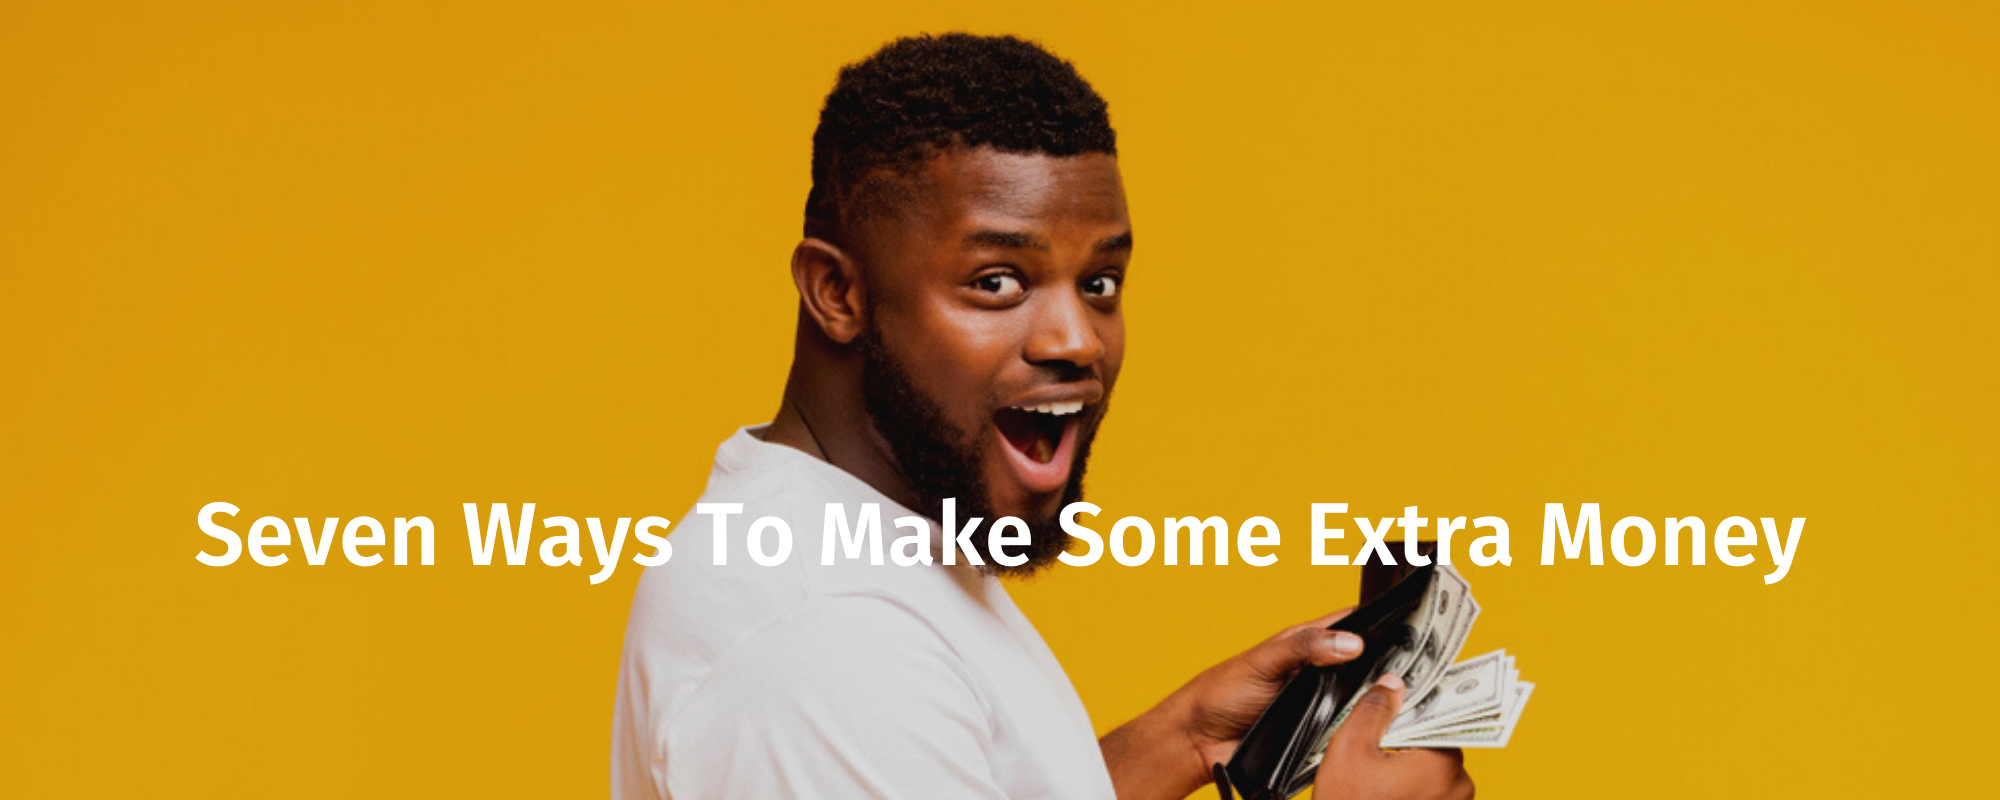 Seven Ways To Make Some Extra Money